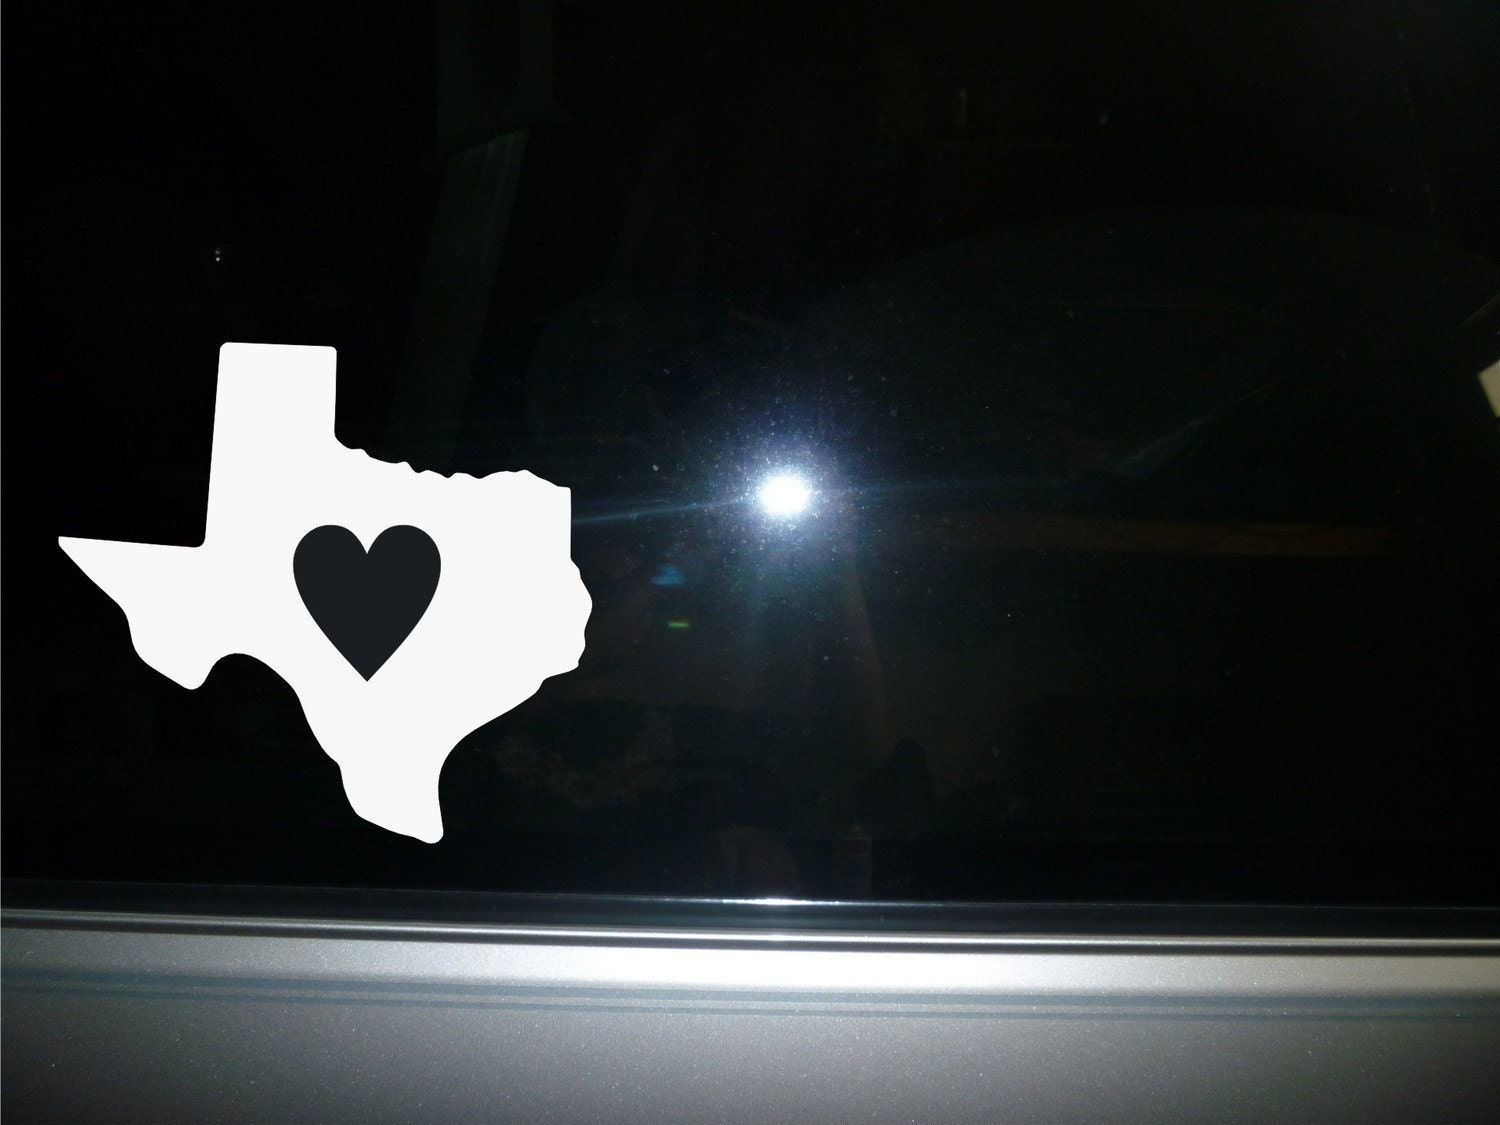 car decal texas state vinyl sticker new. Black Bedroom Furniture Sets. Home Design Ideas